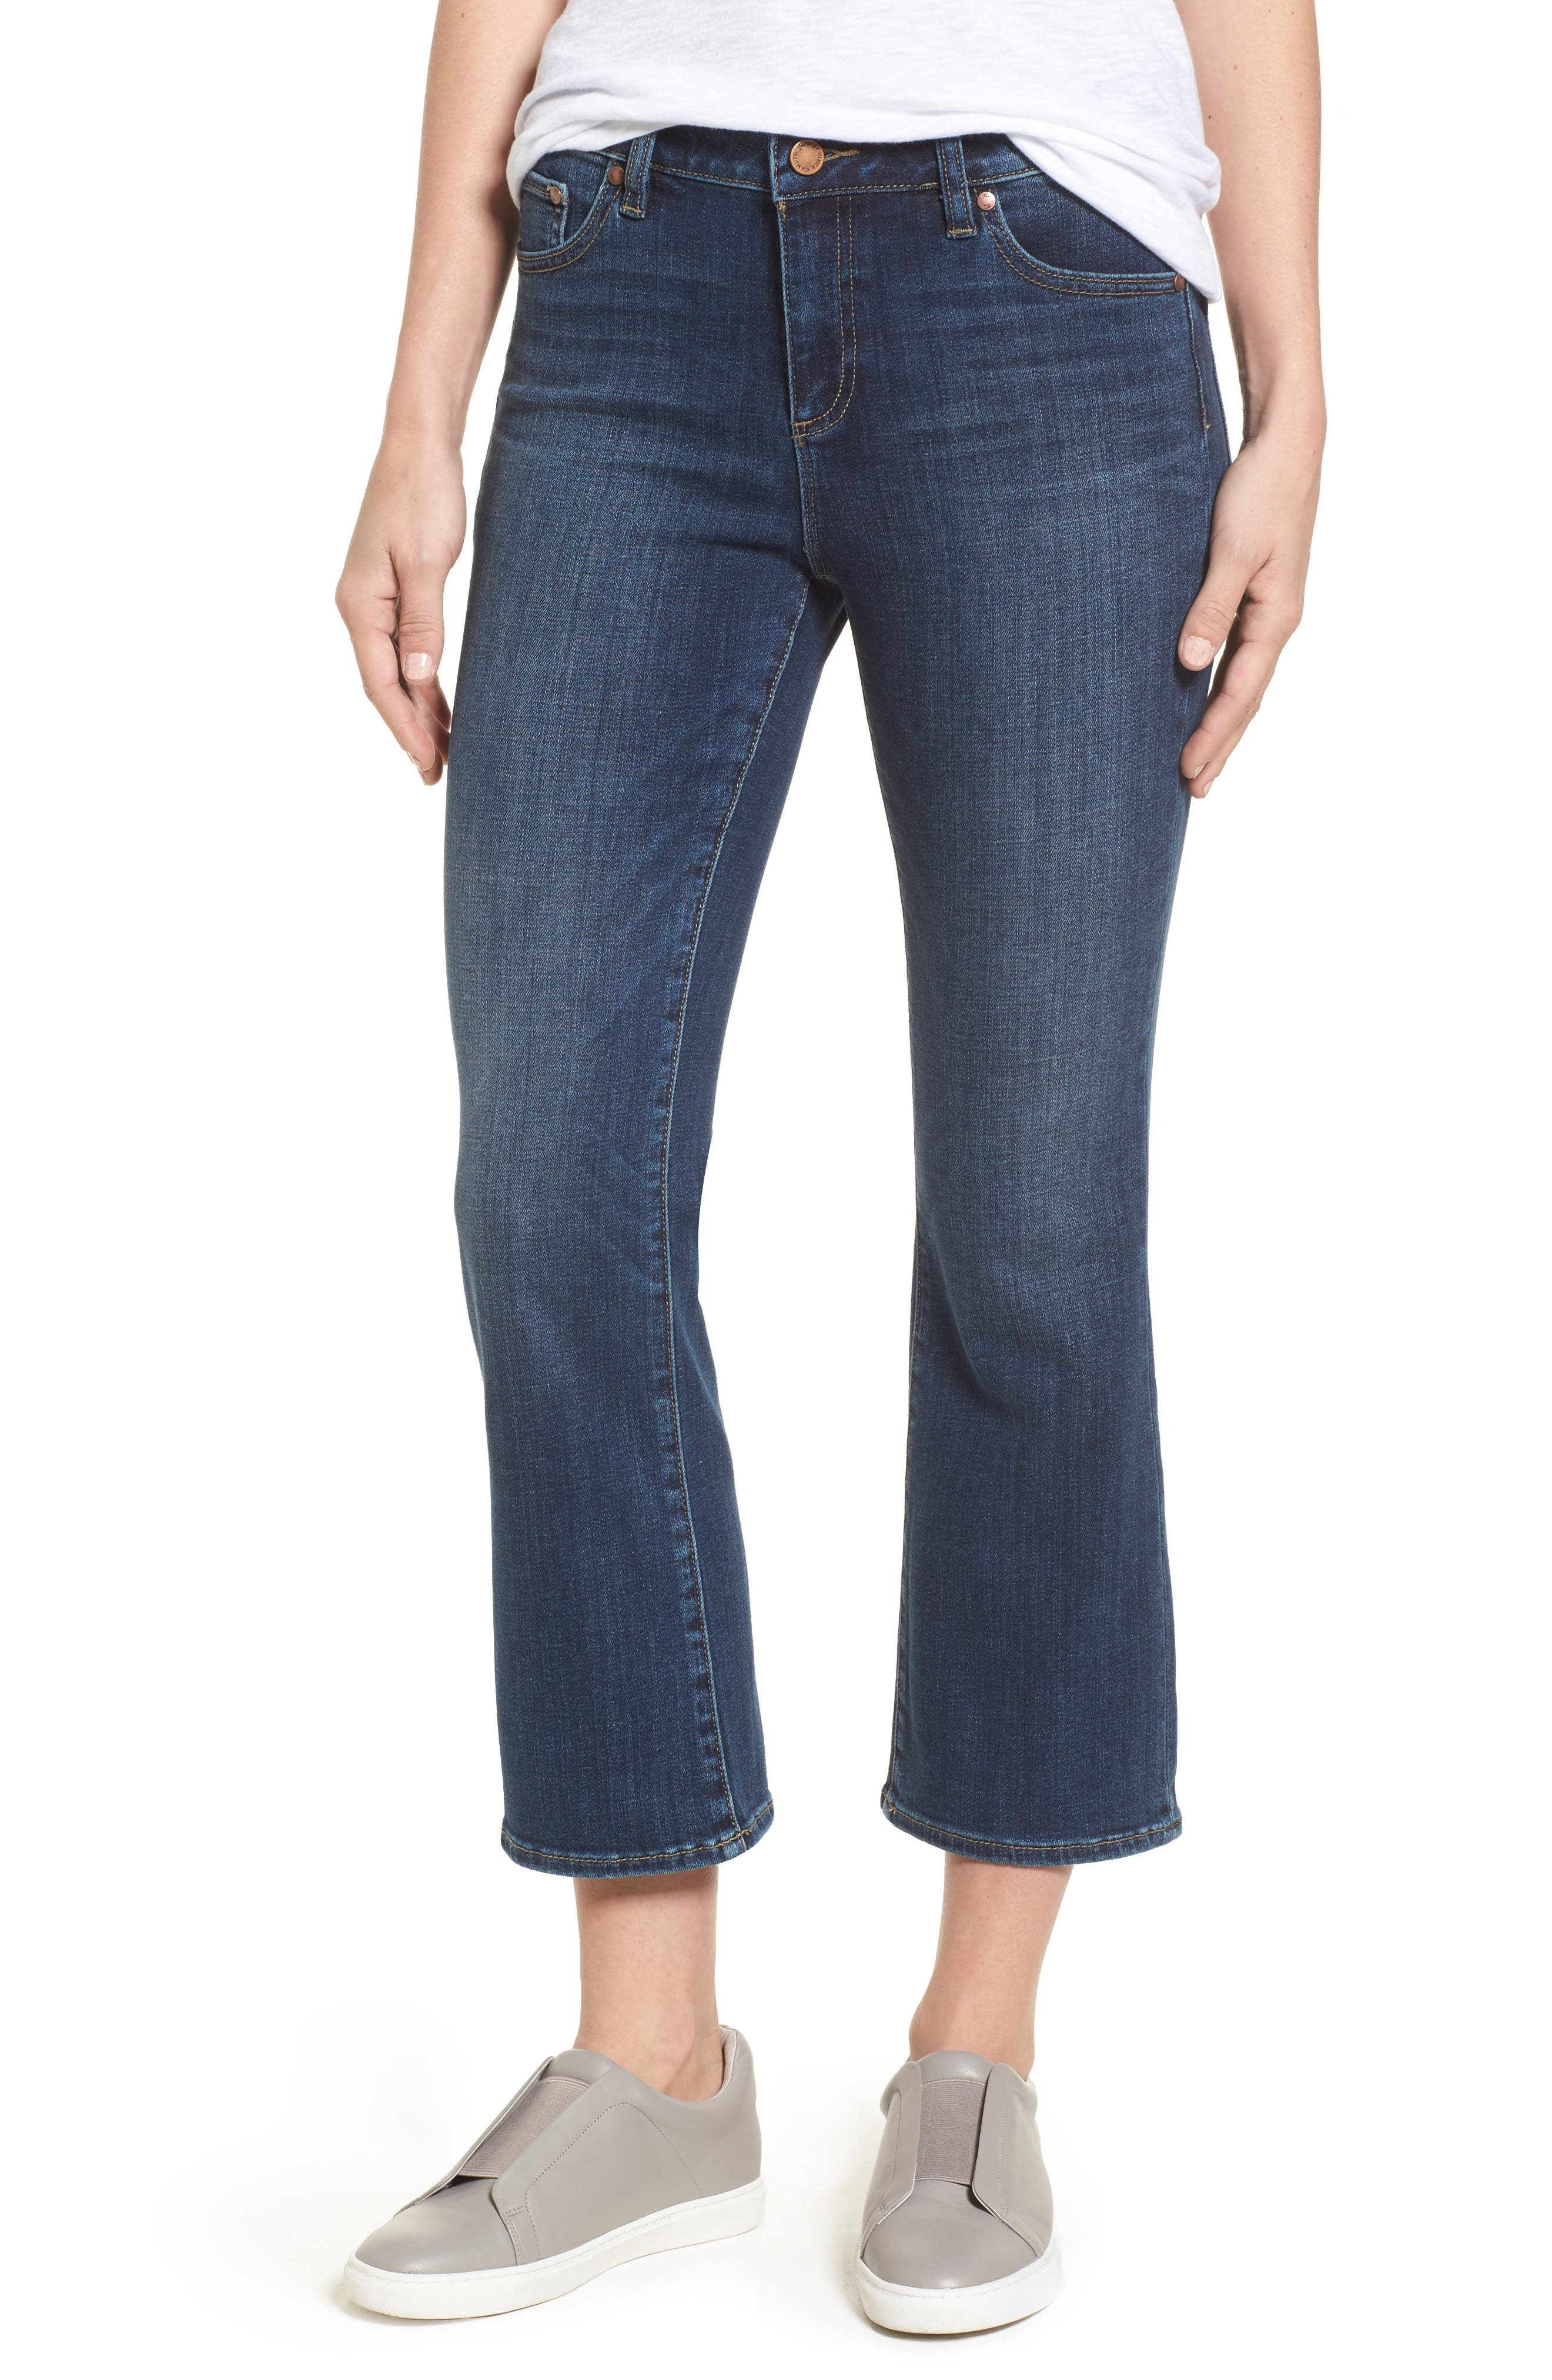 Alternate Image 1 Selected - Two by Vince Camuto Cropped Flare Jeans (Mid Vintage)